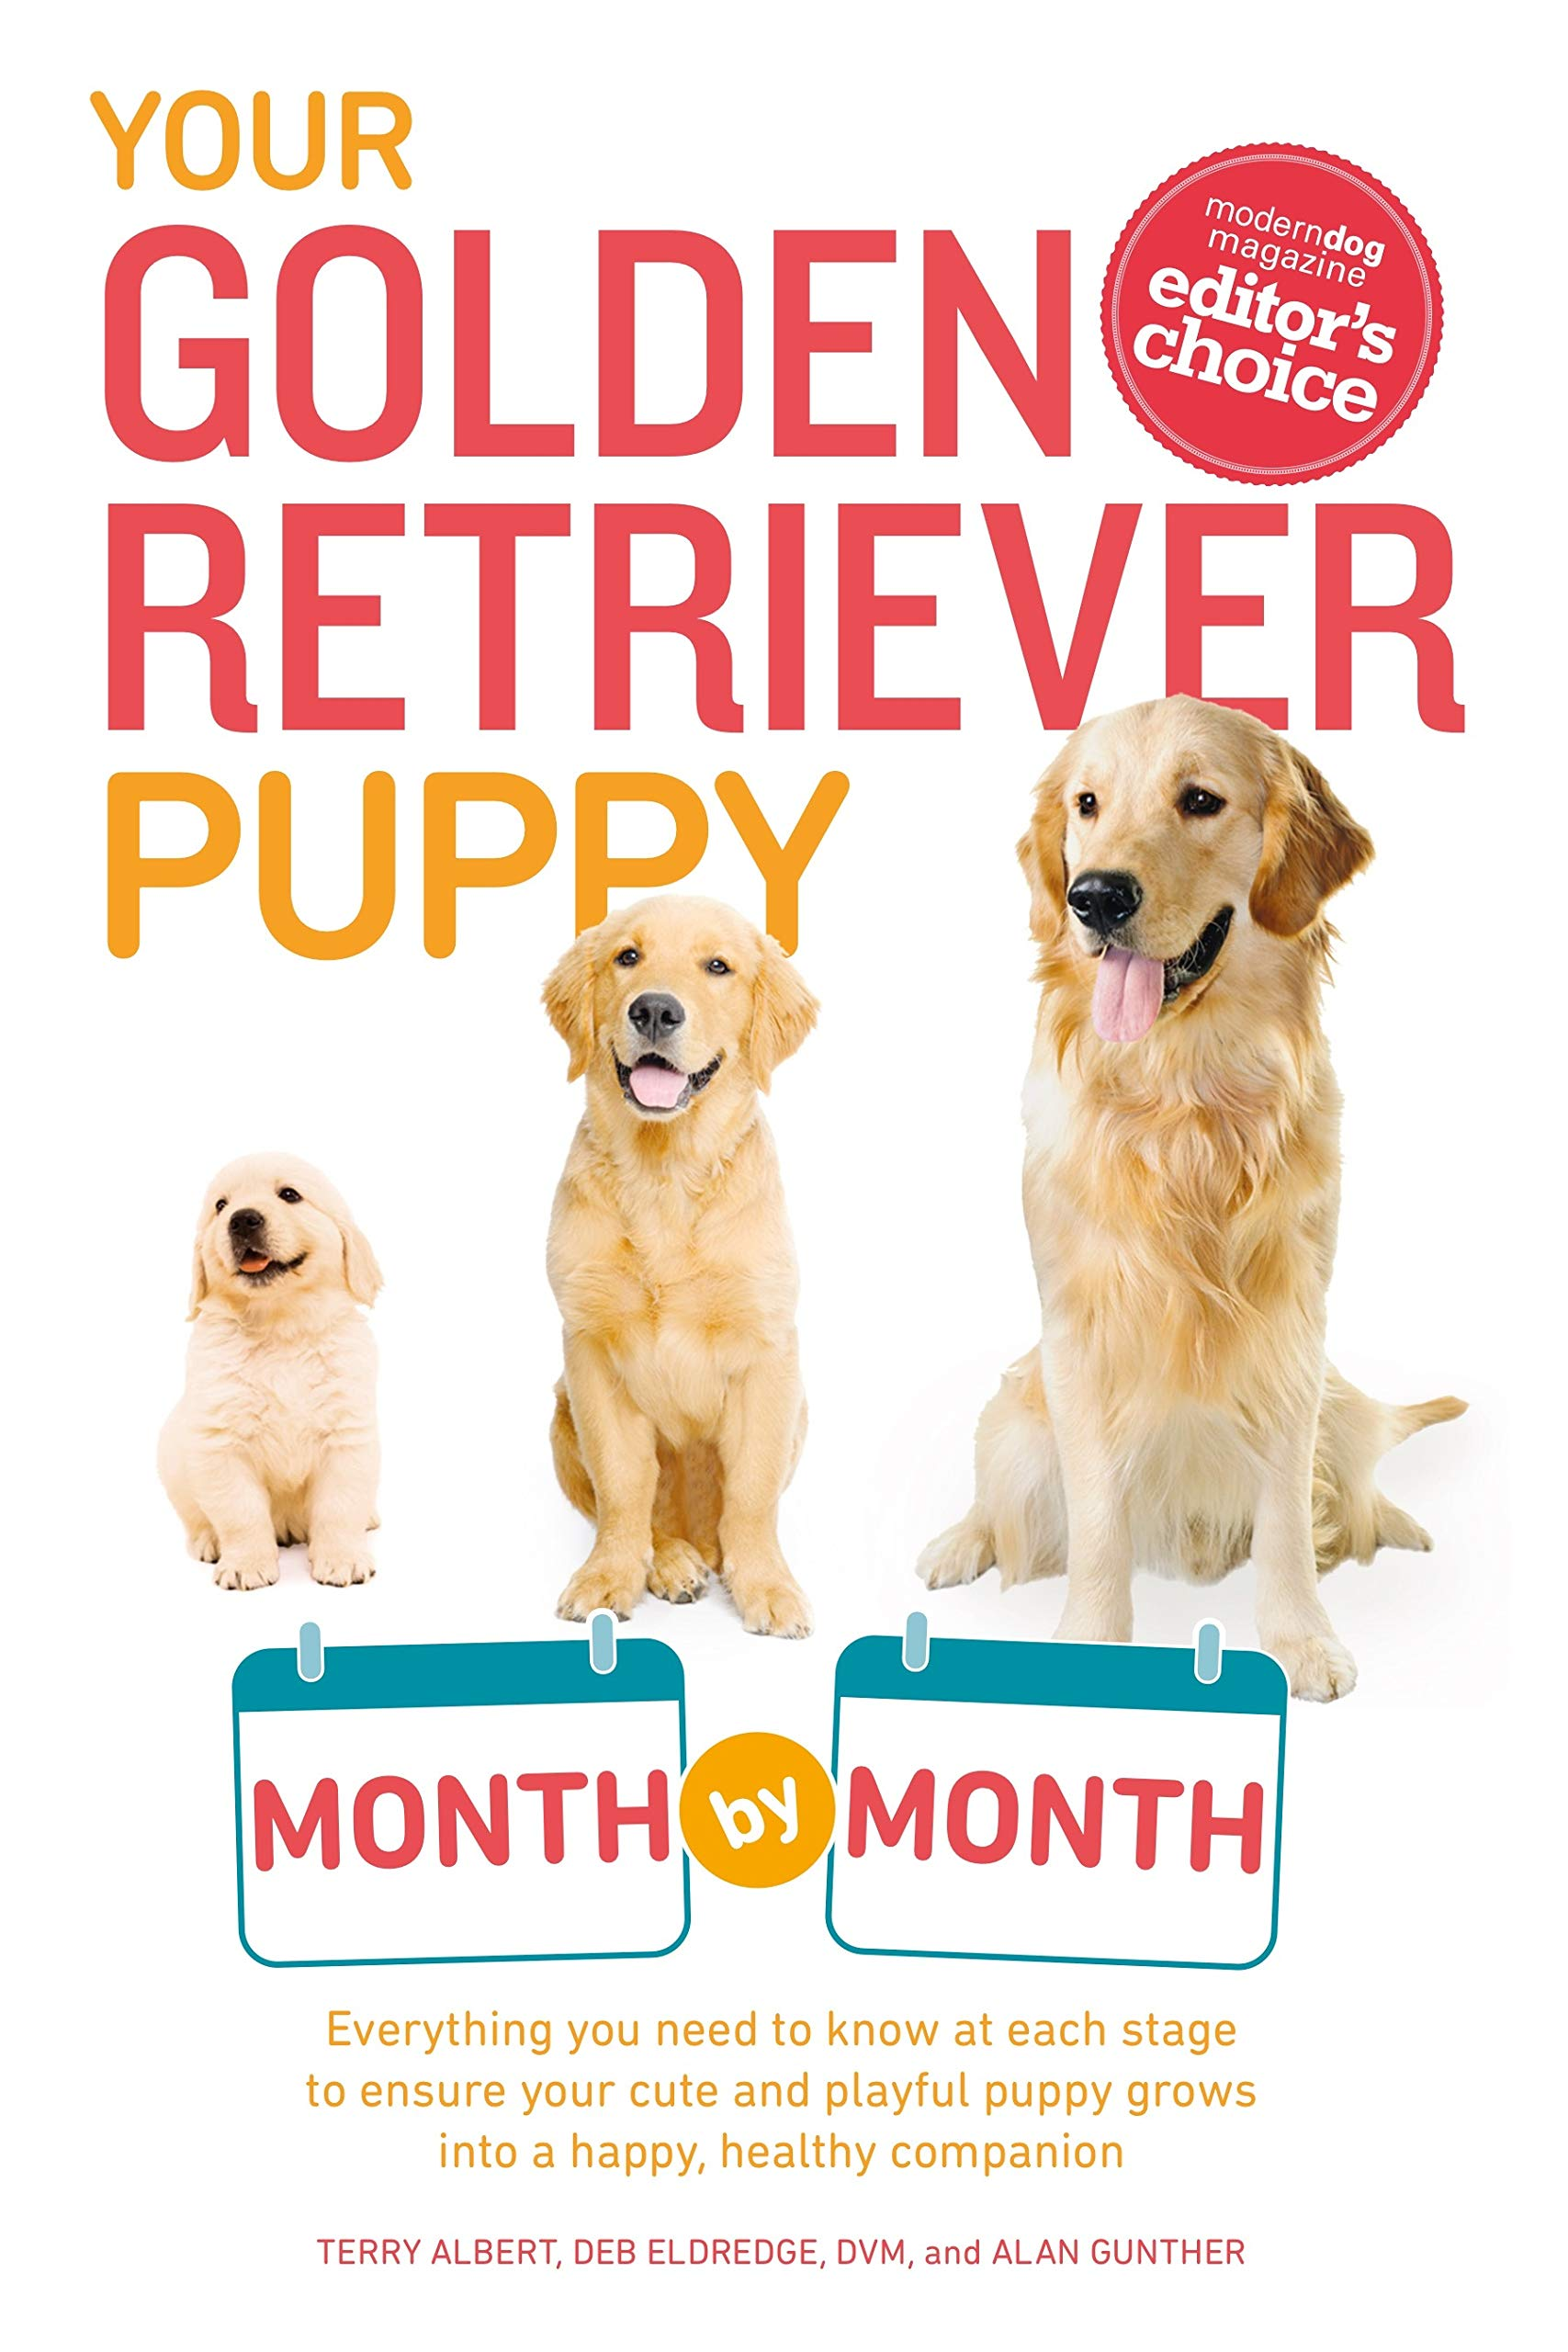 Your Golden Retriever Puppy Month by Month: Everything You